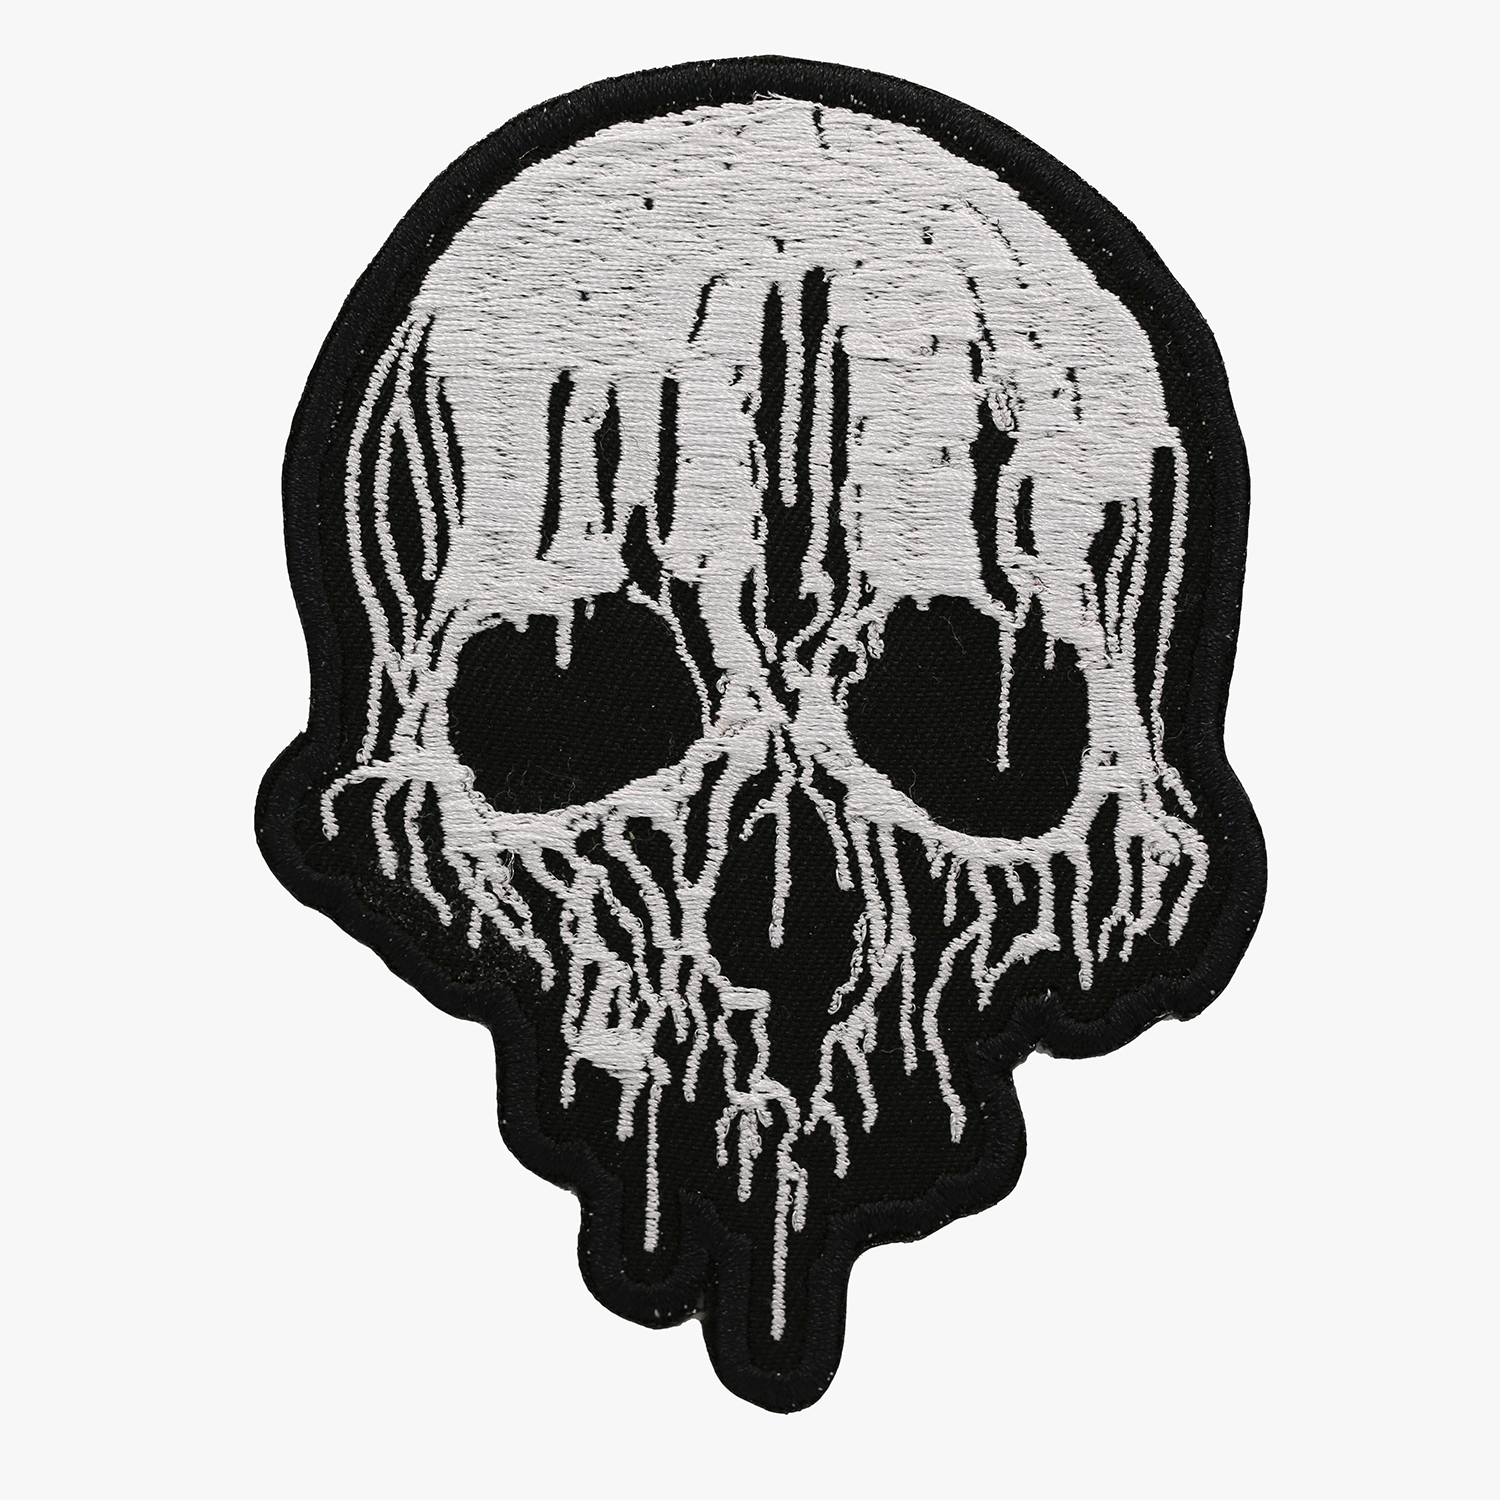 New Melted Skull Embroidered Biker Vest Patch